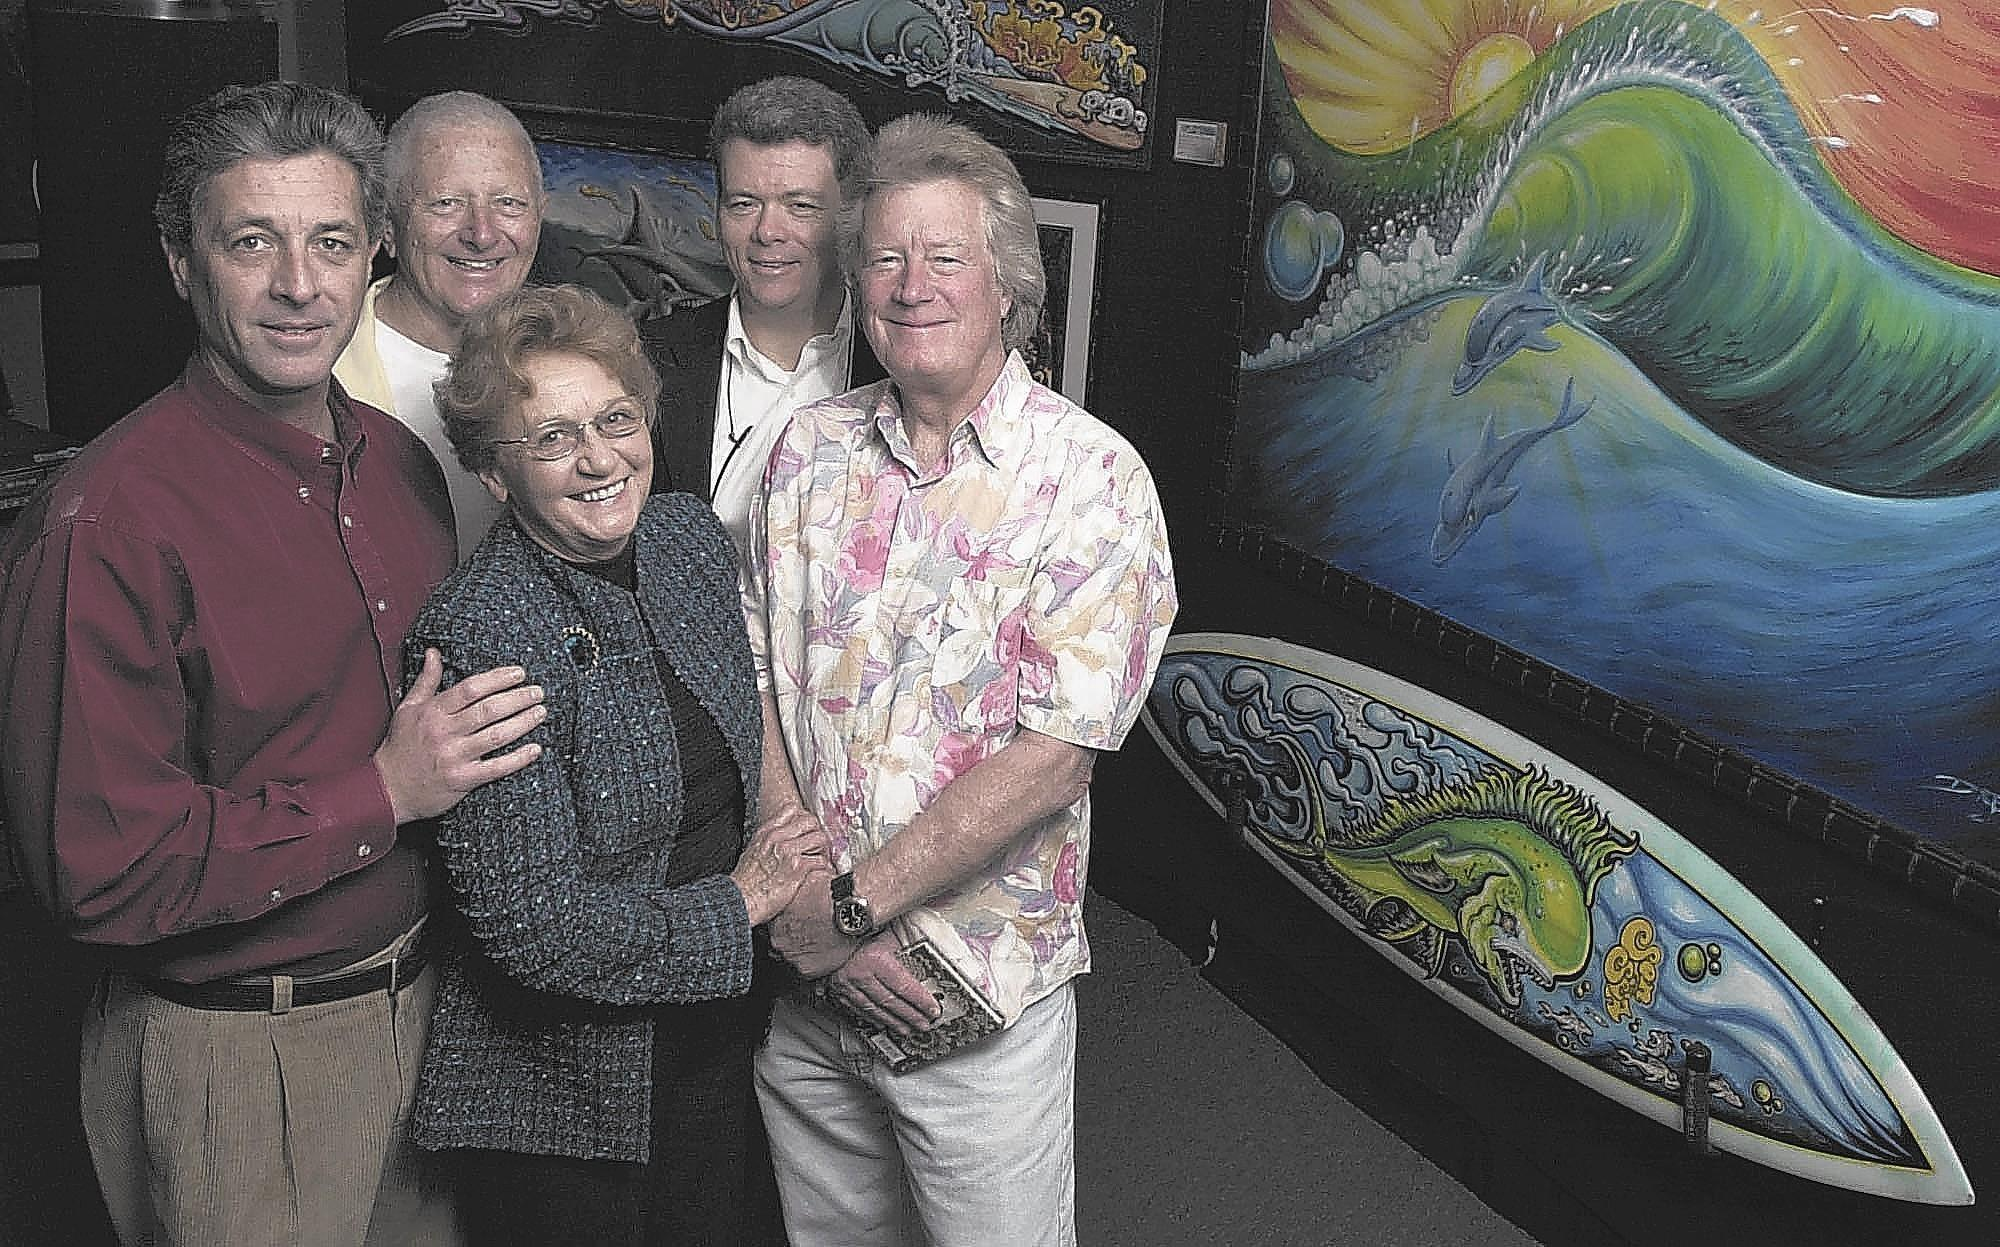 From left, Gary Sahagen, Don MacAllister, Natalie Kotsch, Doug Traub and Dean Torrence of Huntington Beach's International Surfing Museum. Kotsch, the museum's founder, died at the age of 76.